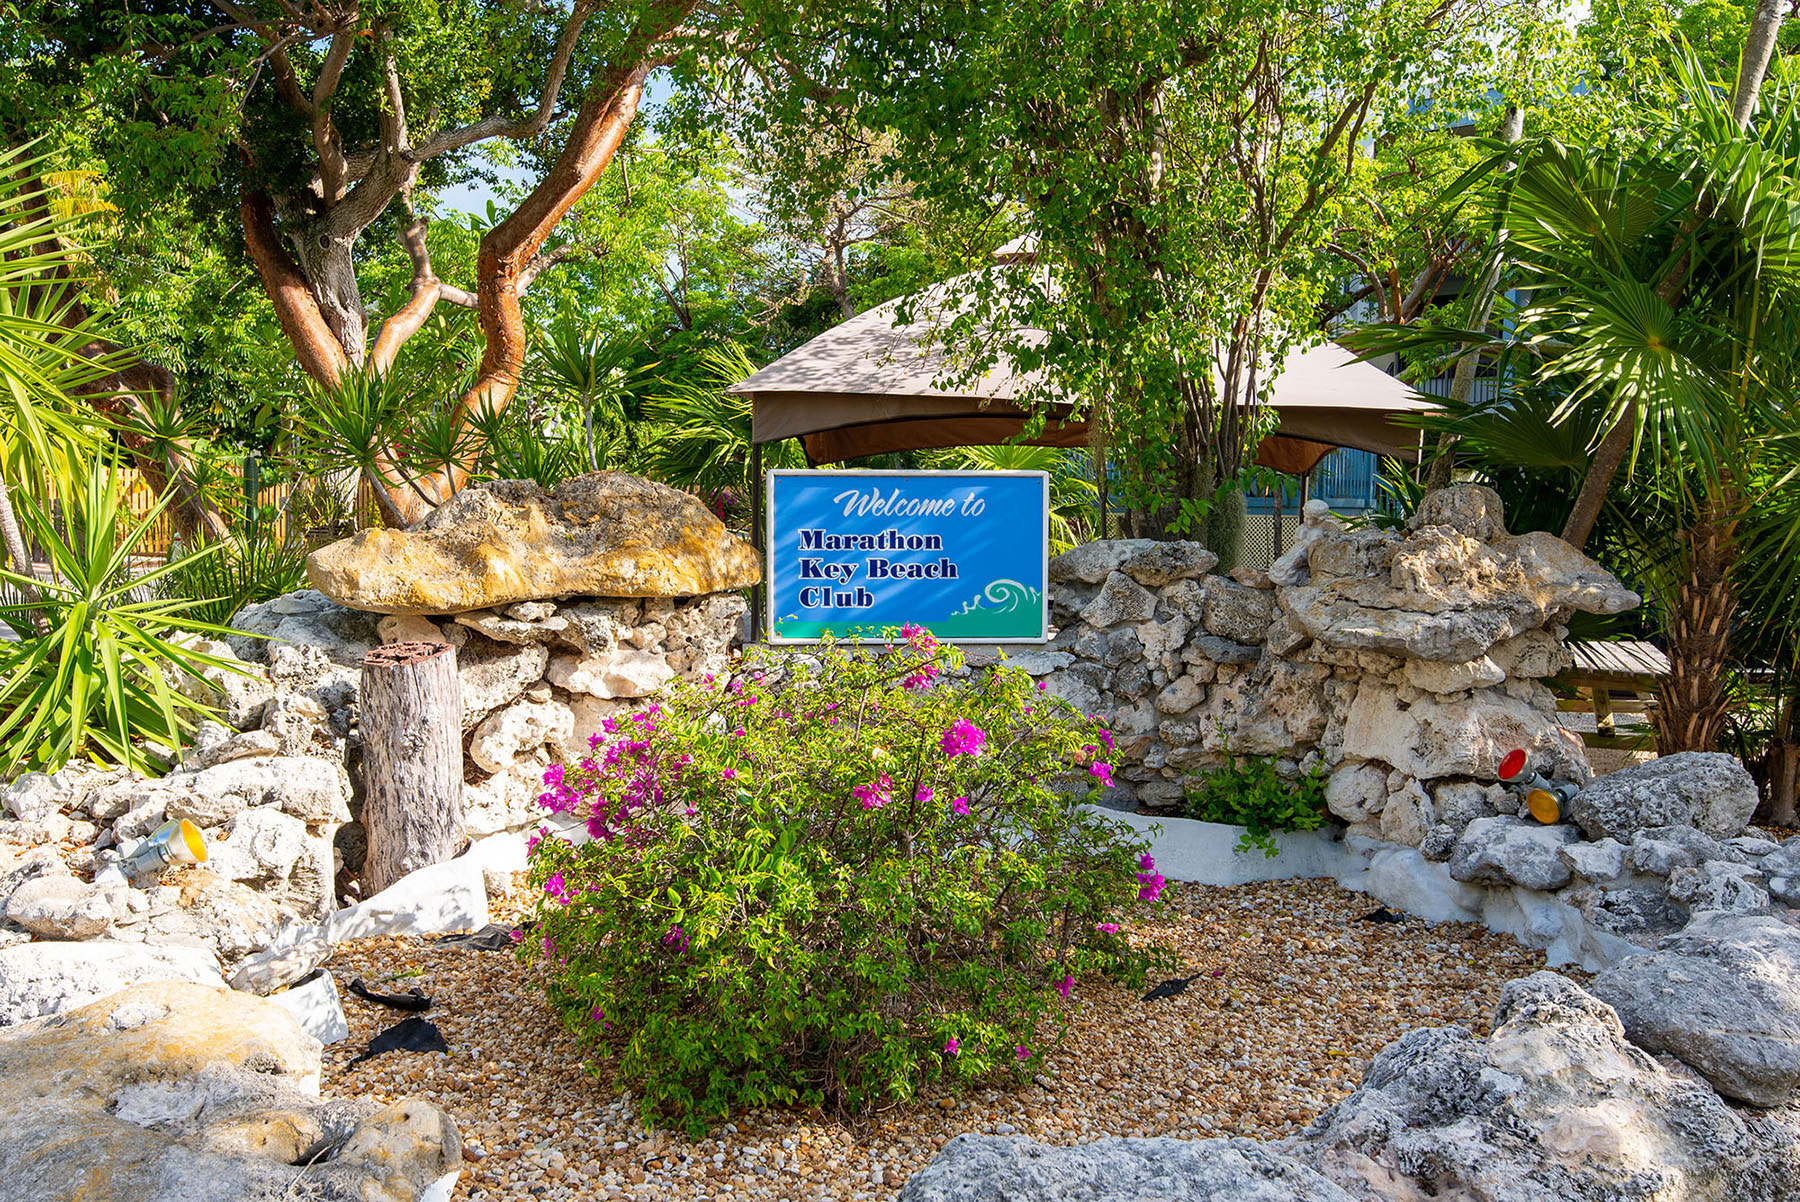 Marathon Key Beach Club resort welcome sign